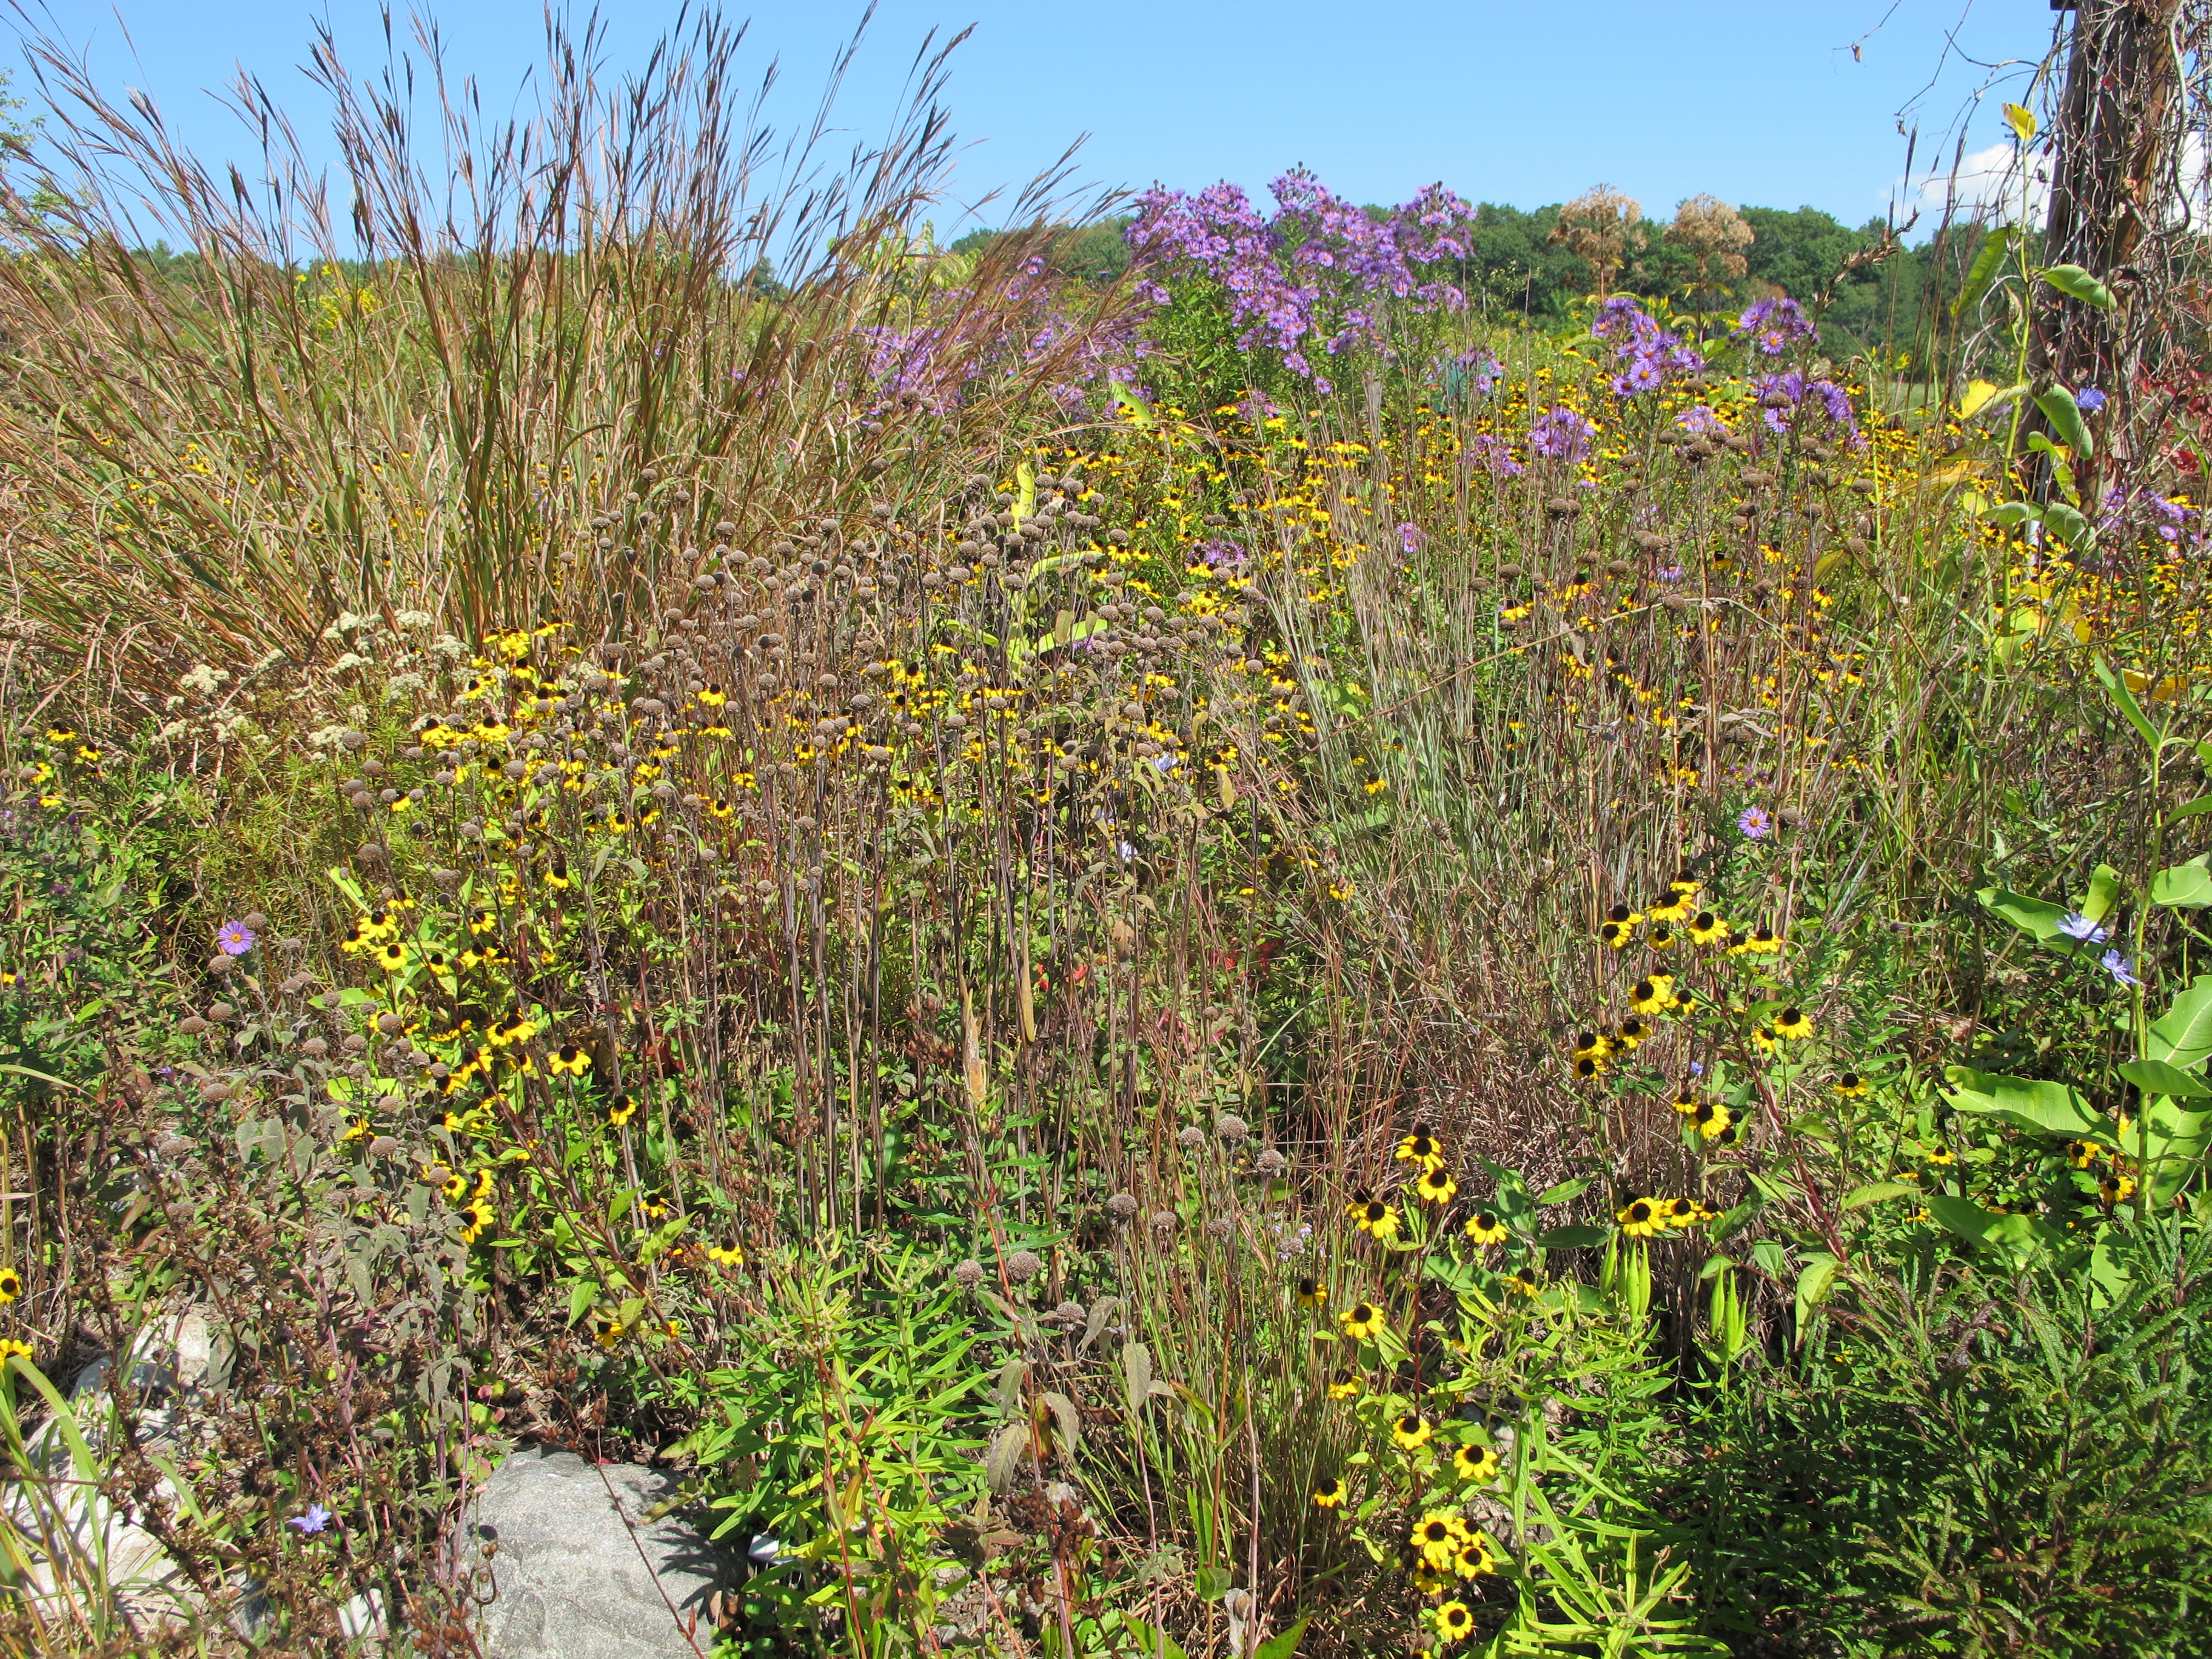 yellow Brown Eyed Susan's and purple new england asters blooming